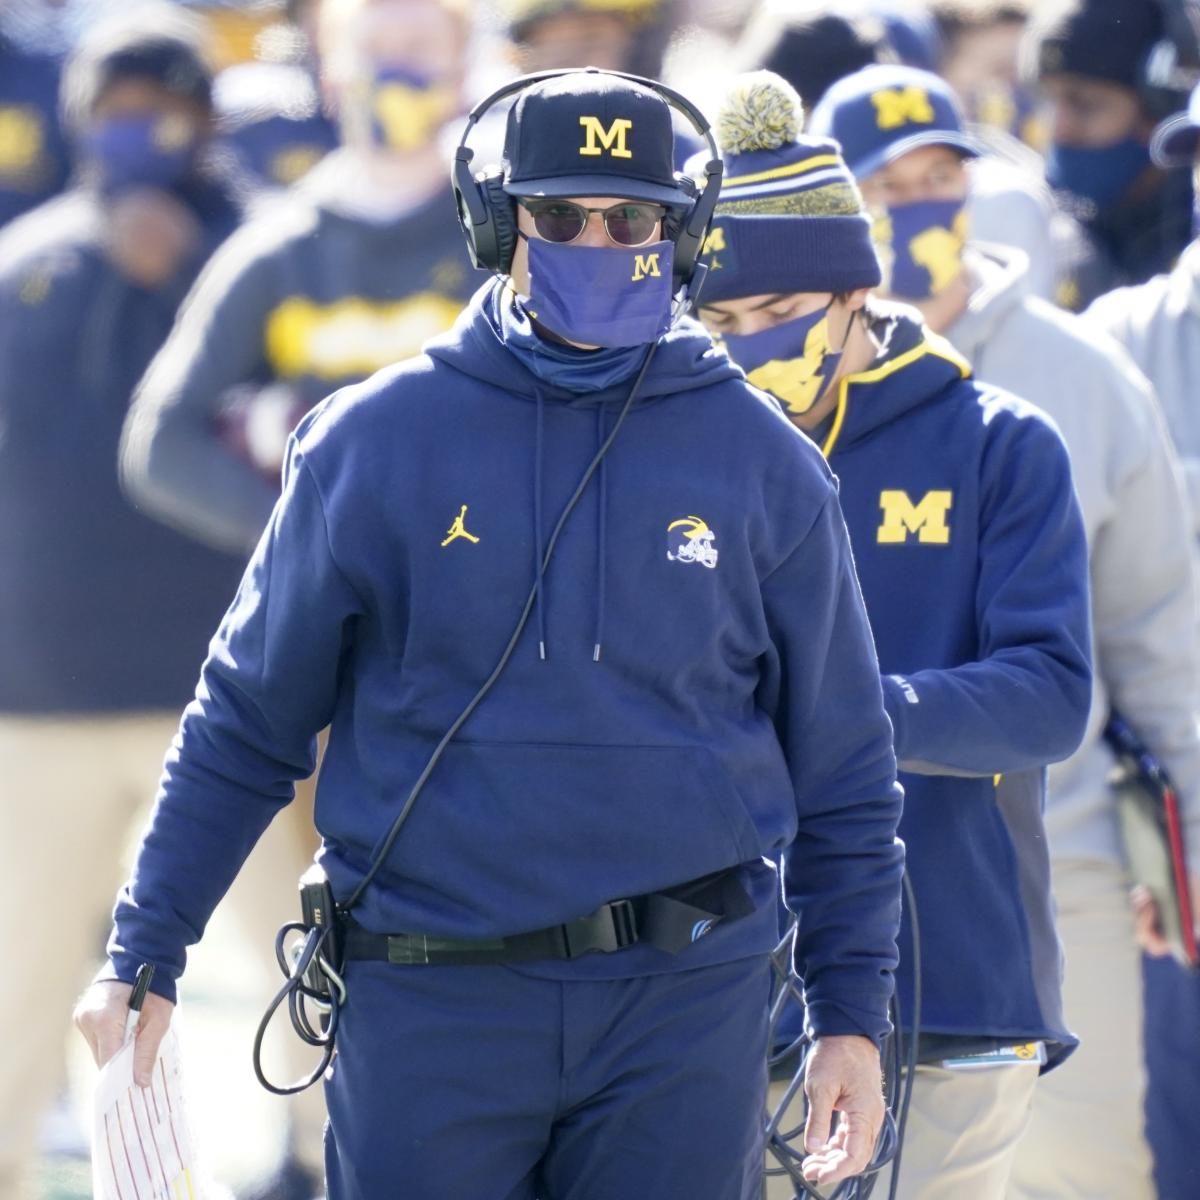 It's Time to Have a Discussion About Michigan and Jim Harbaugh